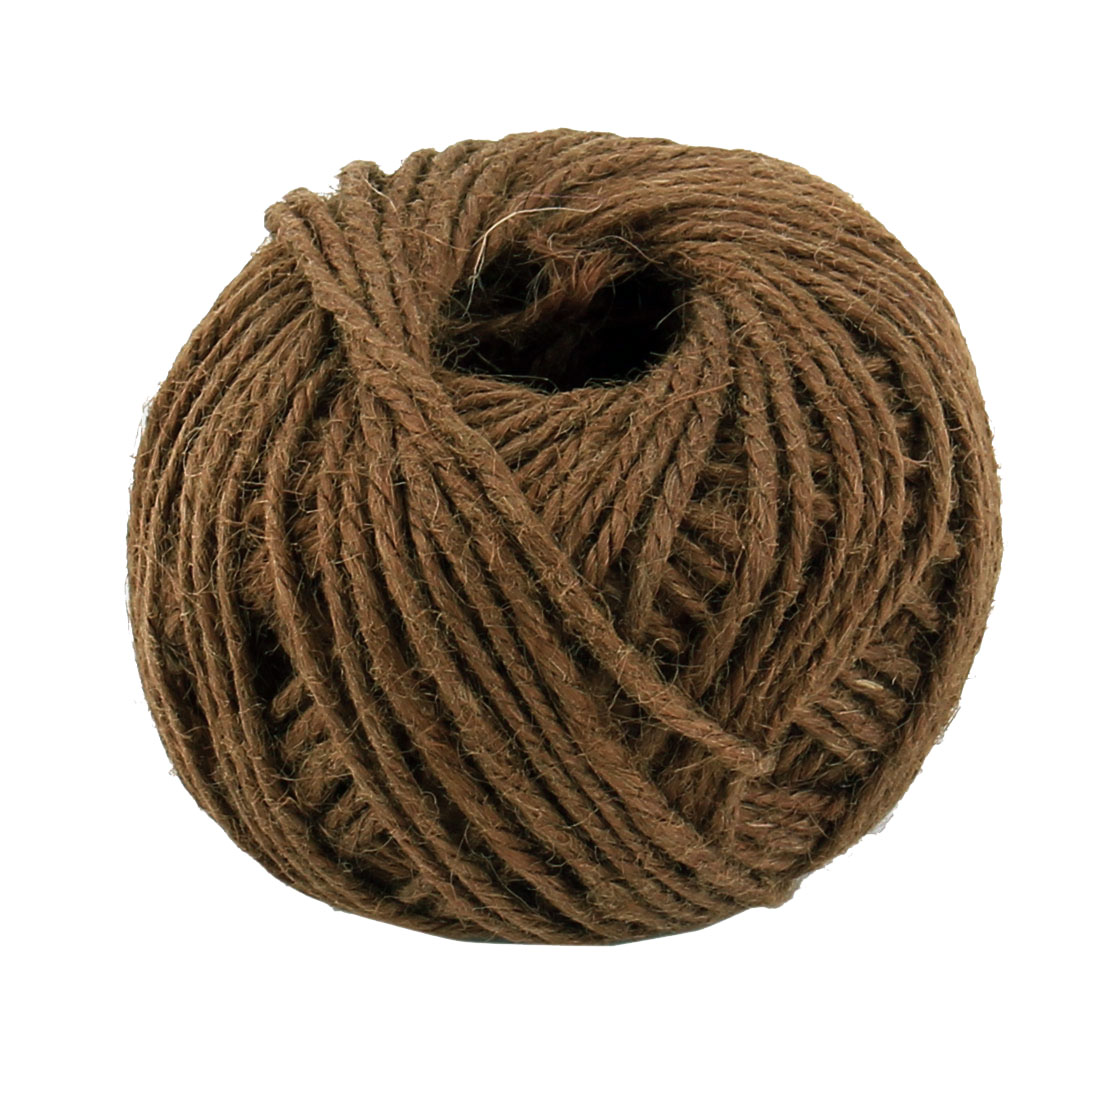 Jute Burlap Ribbon Twine Rope Cord String Wrap Roll Coffee Color 2mm Dia 50m Length